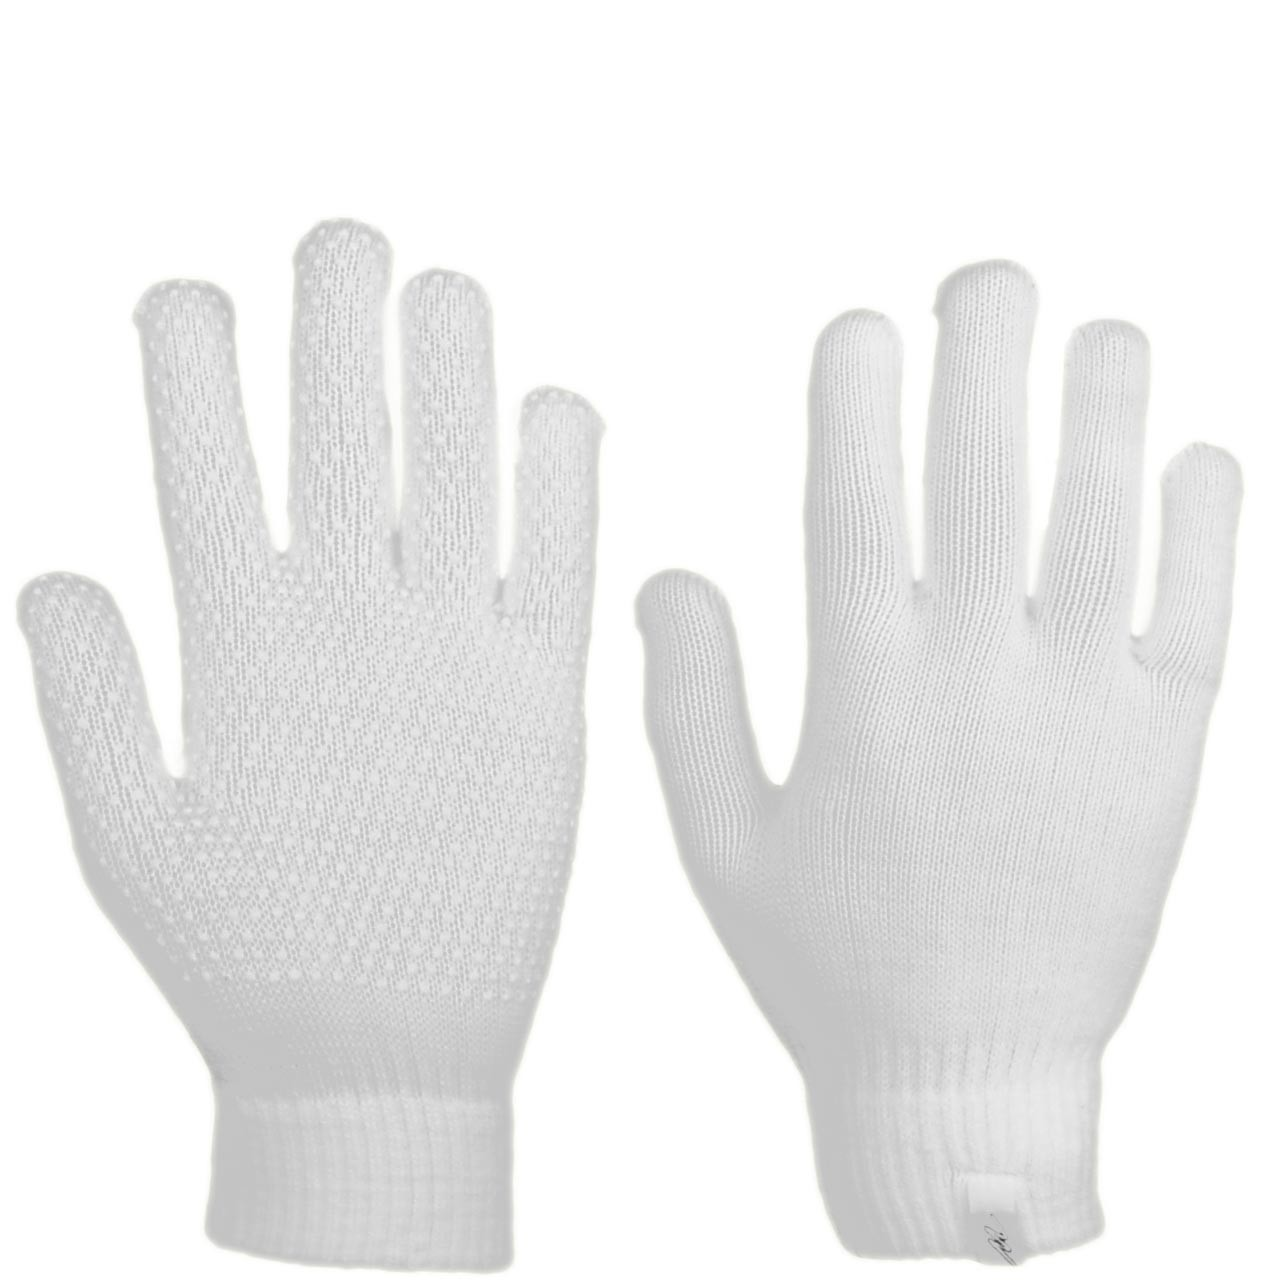 Mondoni Magic Gloves